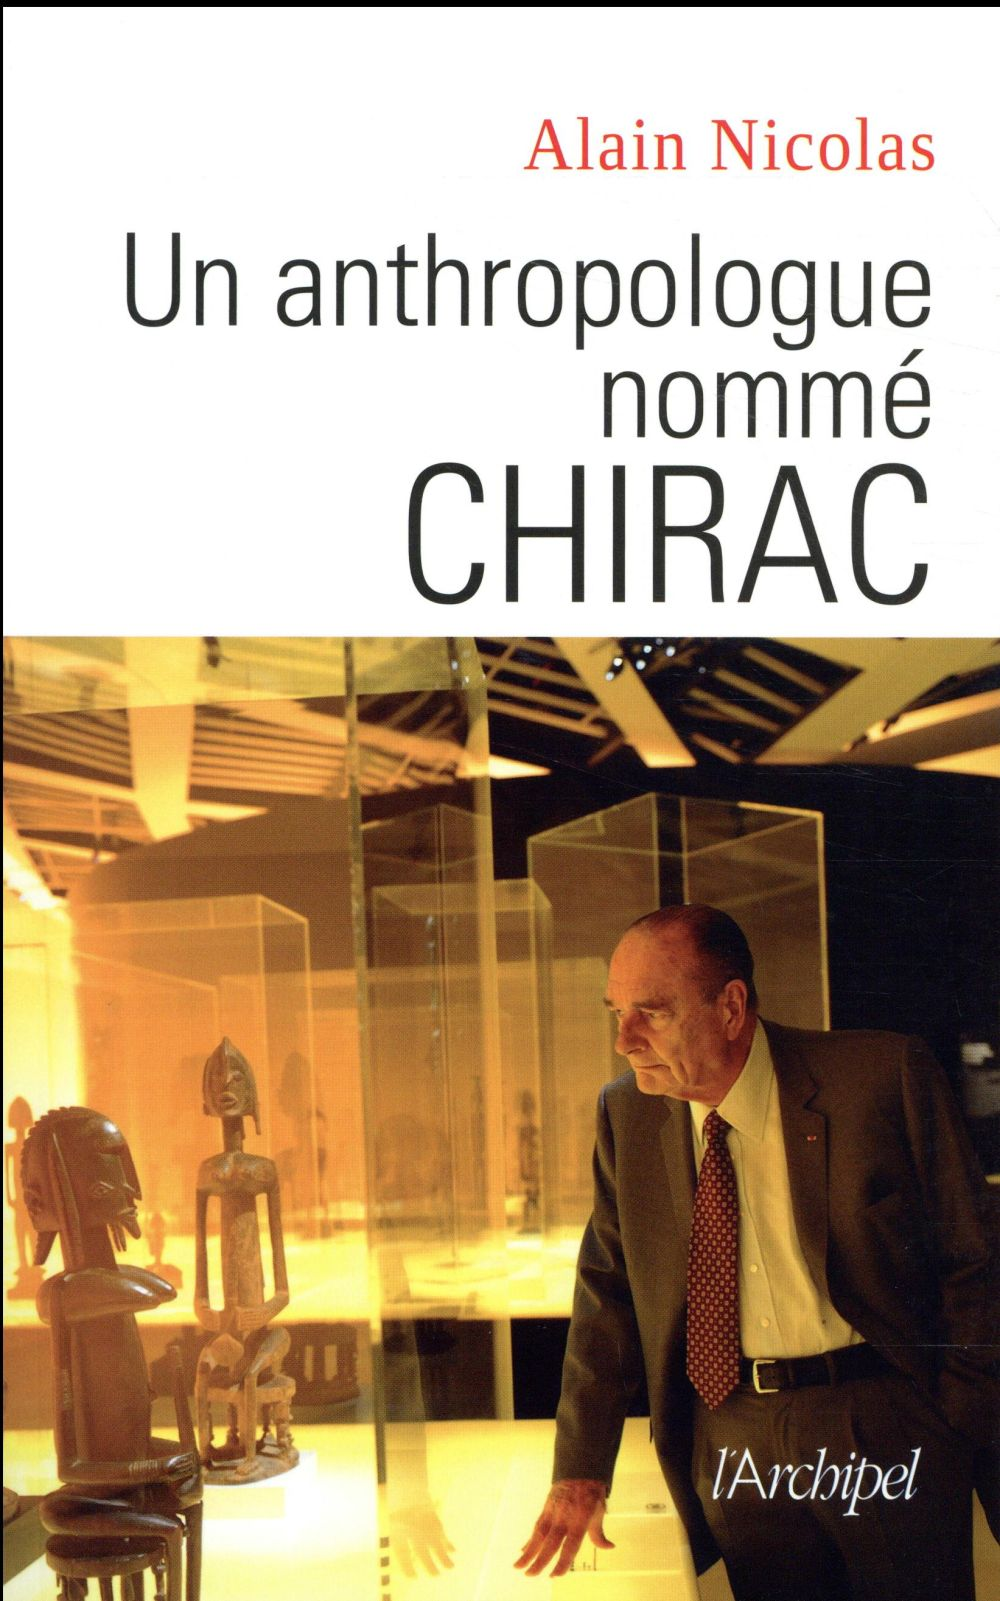 UN ANTHROPOLOGUE NOMME CHIRAC